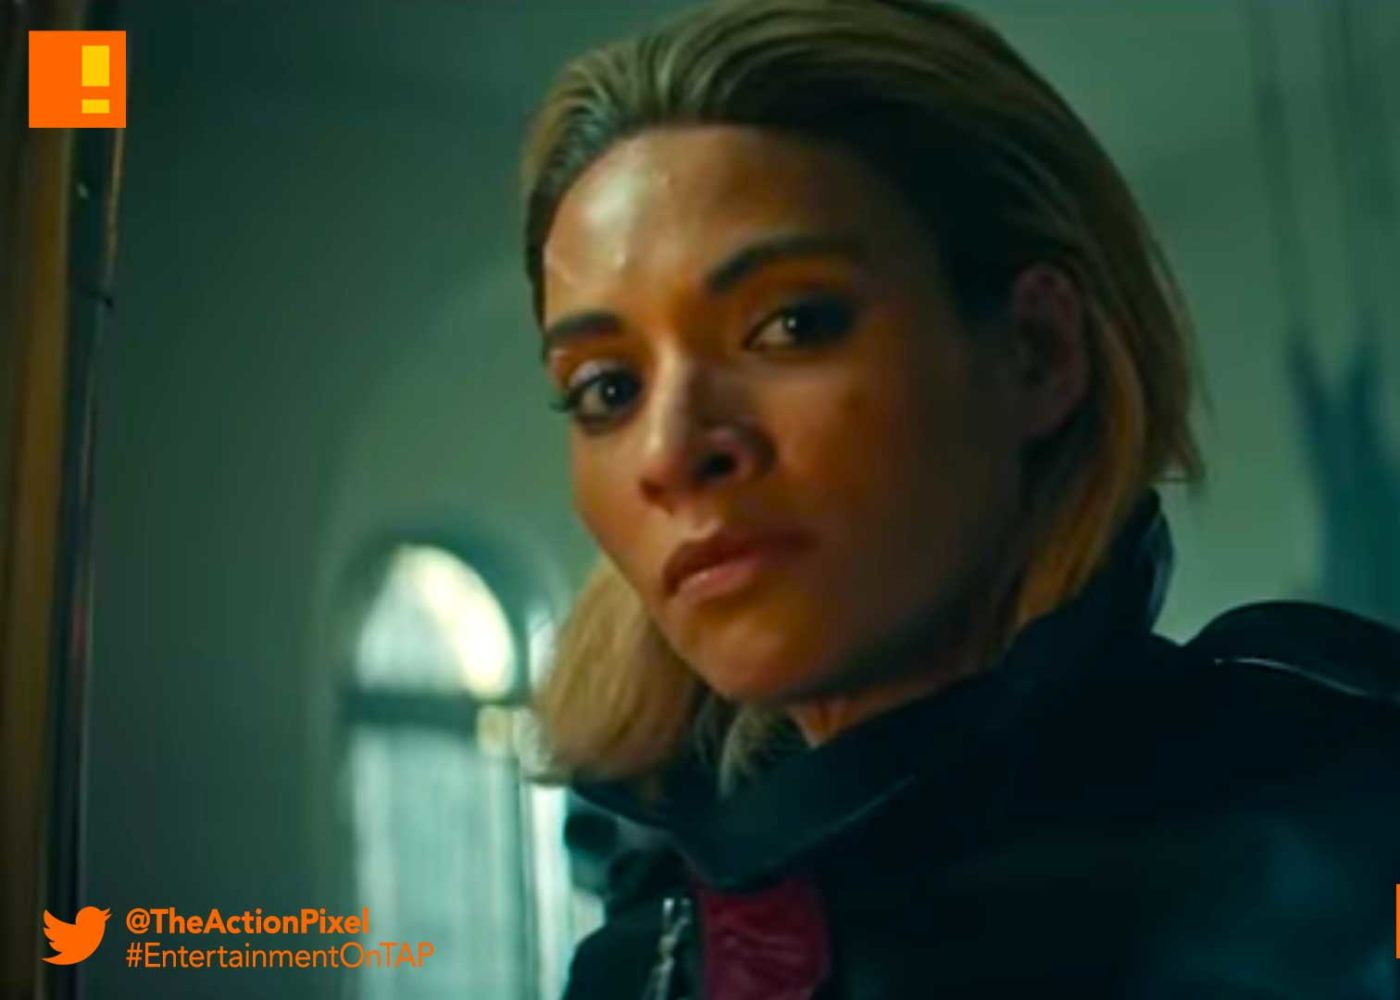 just cause 4, trailer, square enix, live action, entertainment on tap, the action pixel,